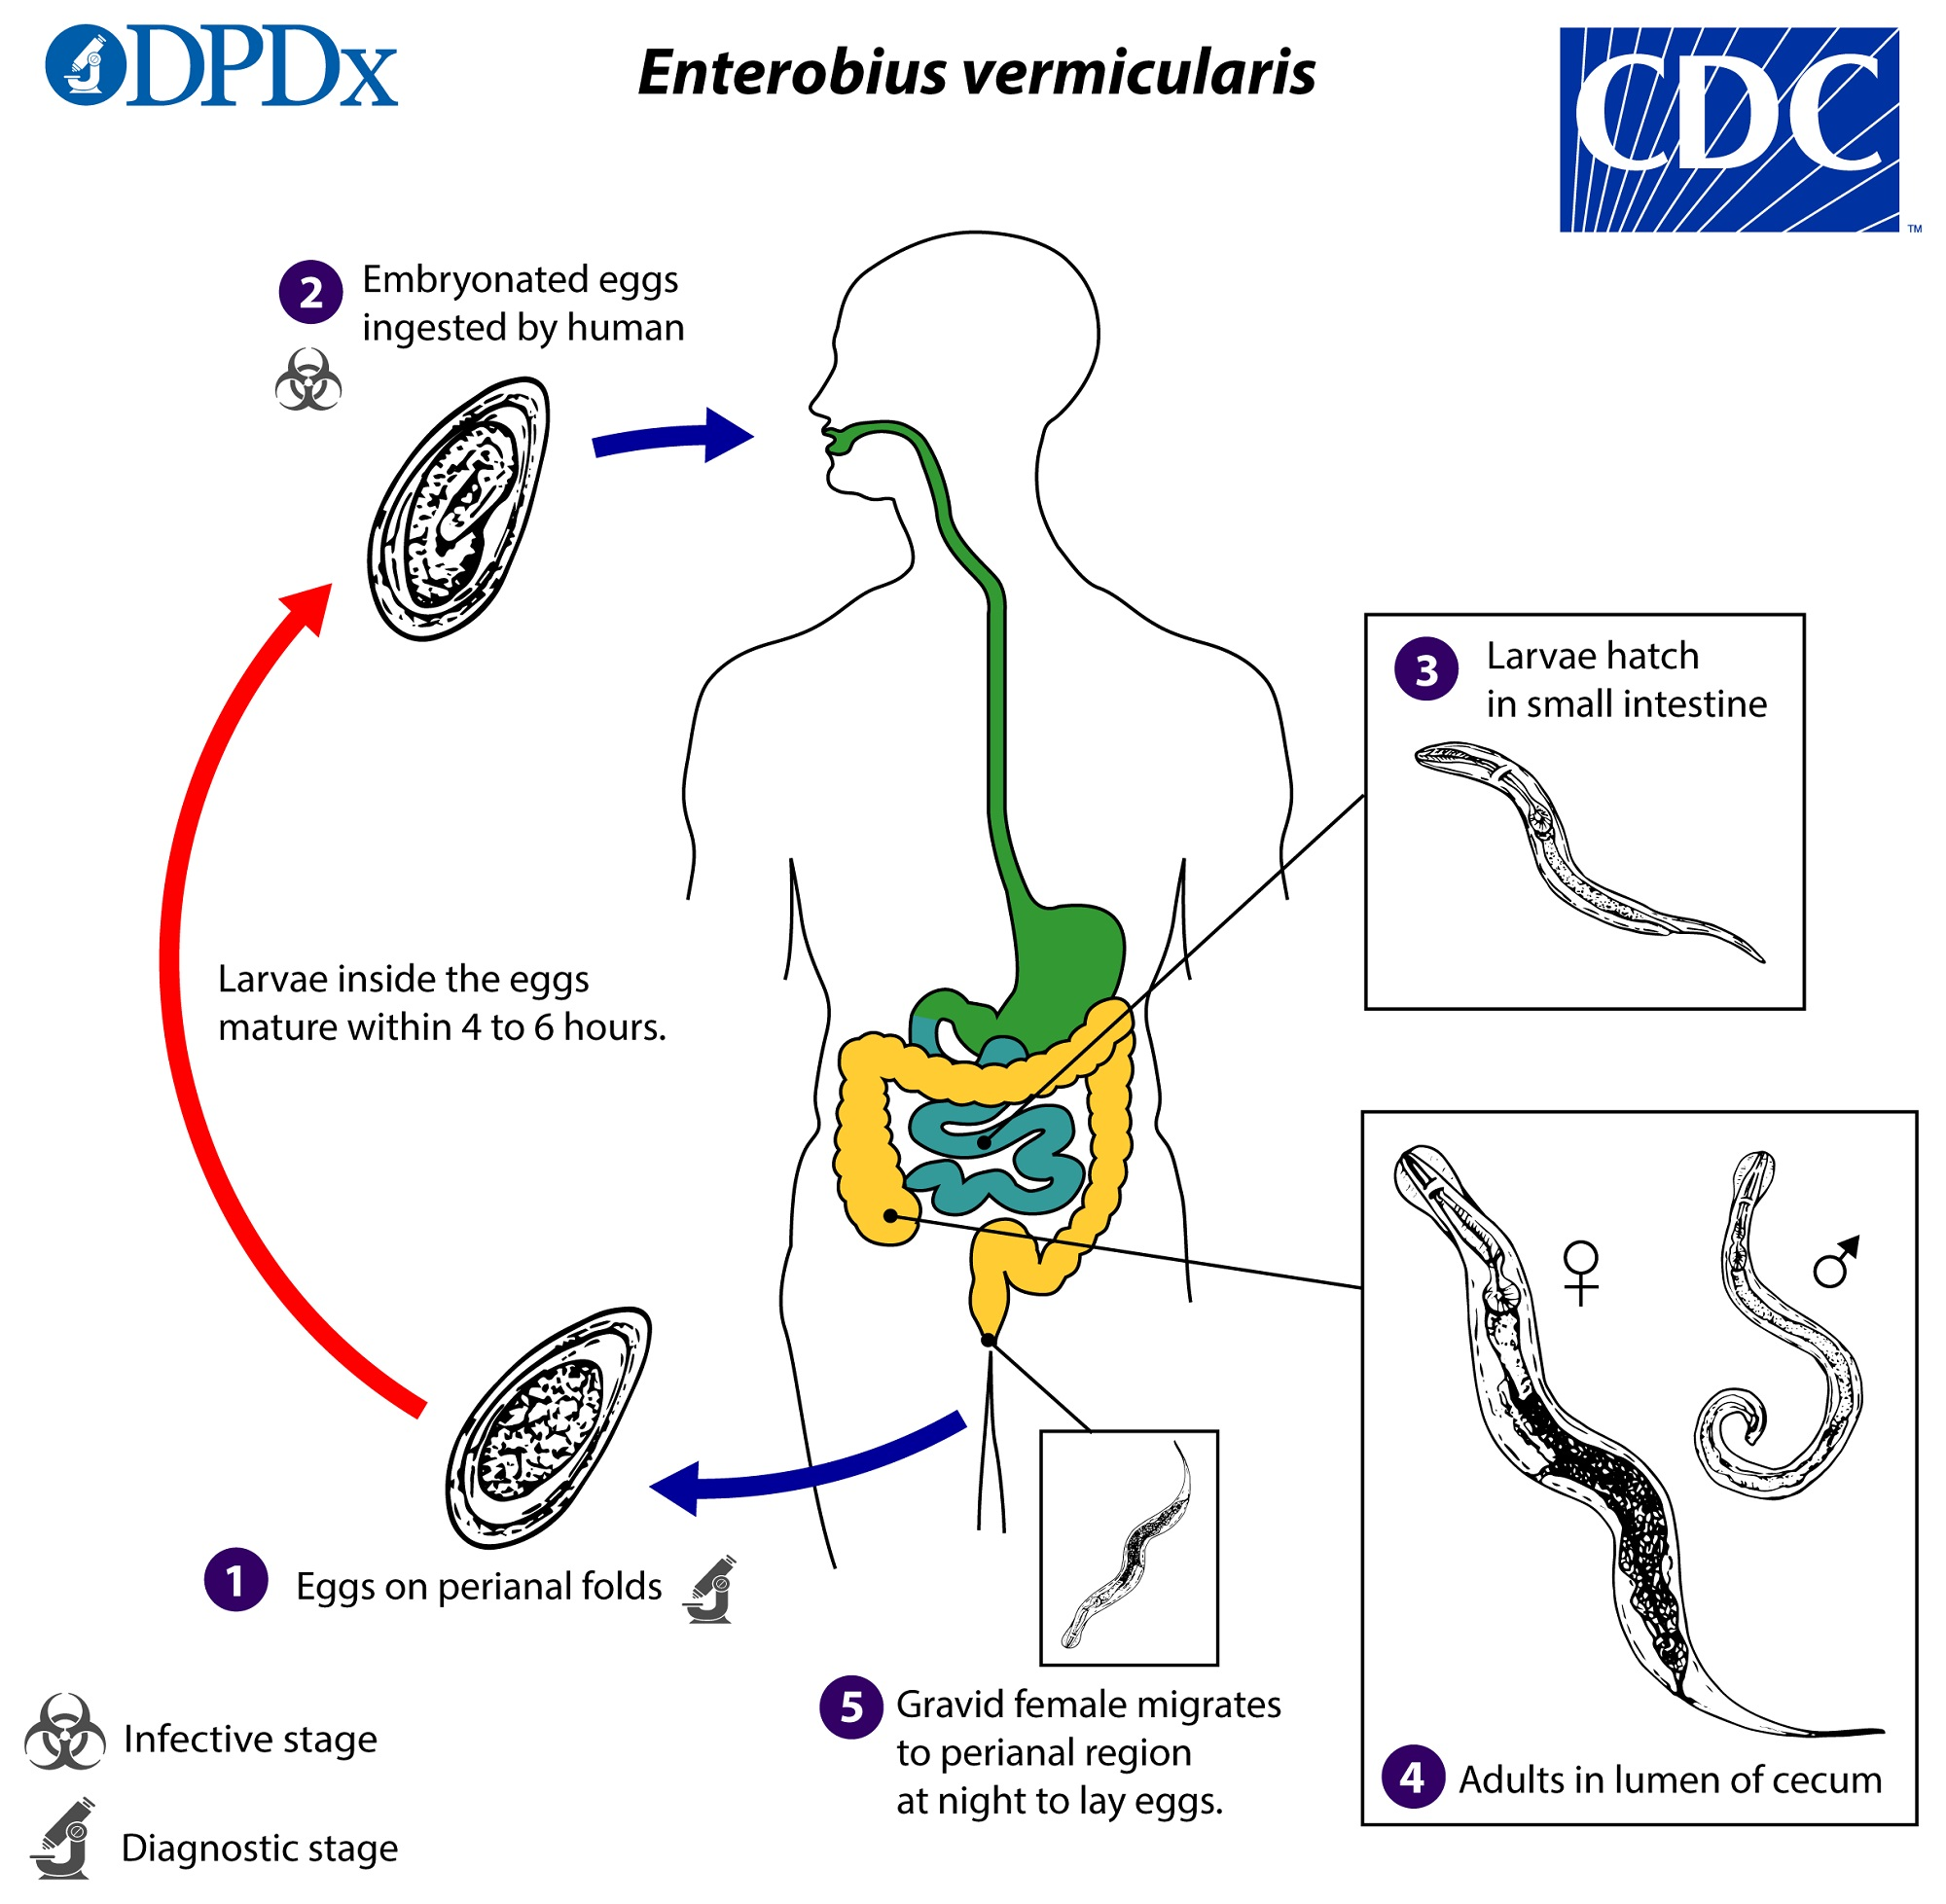 enterobius vermicularis cdc